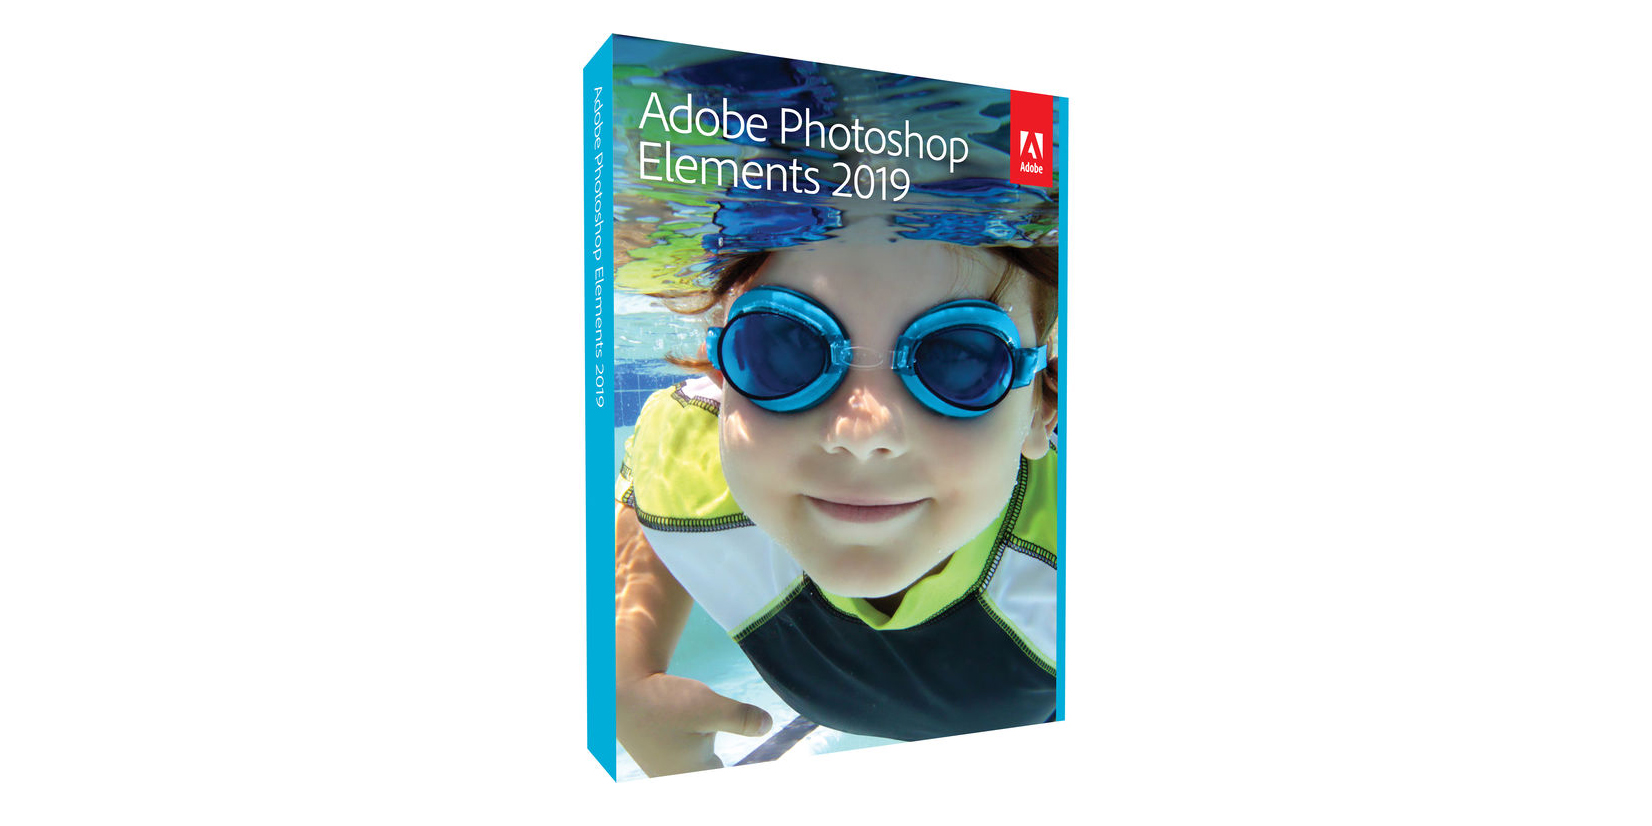 Today only, Adobe Photoshop Elements 2019 is on sale for Mac/PC $65 (Reg. $100)